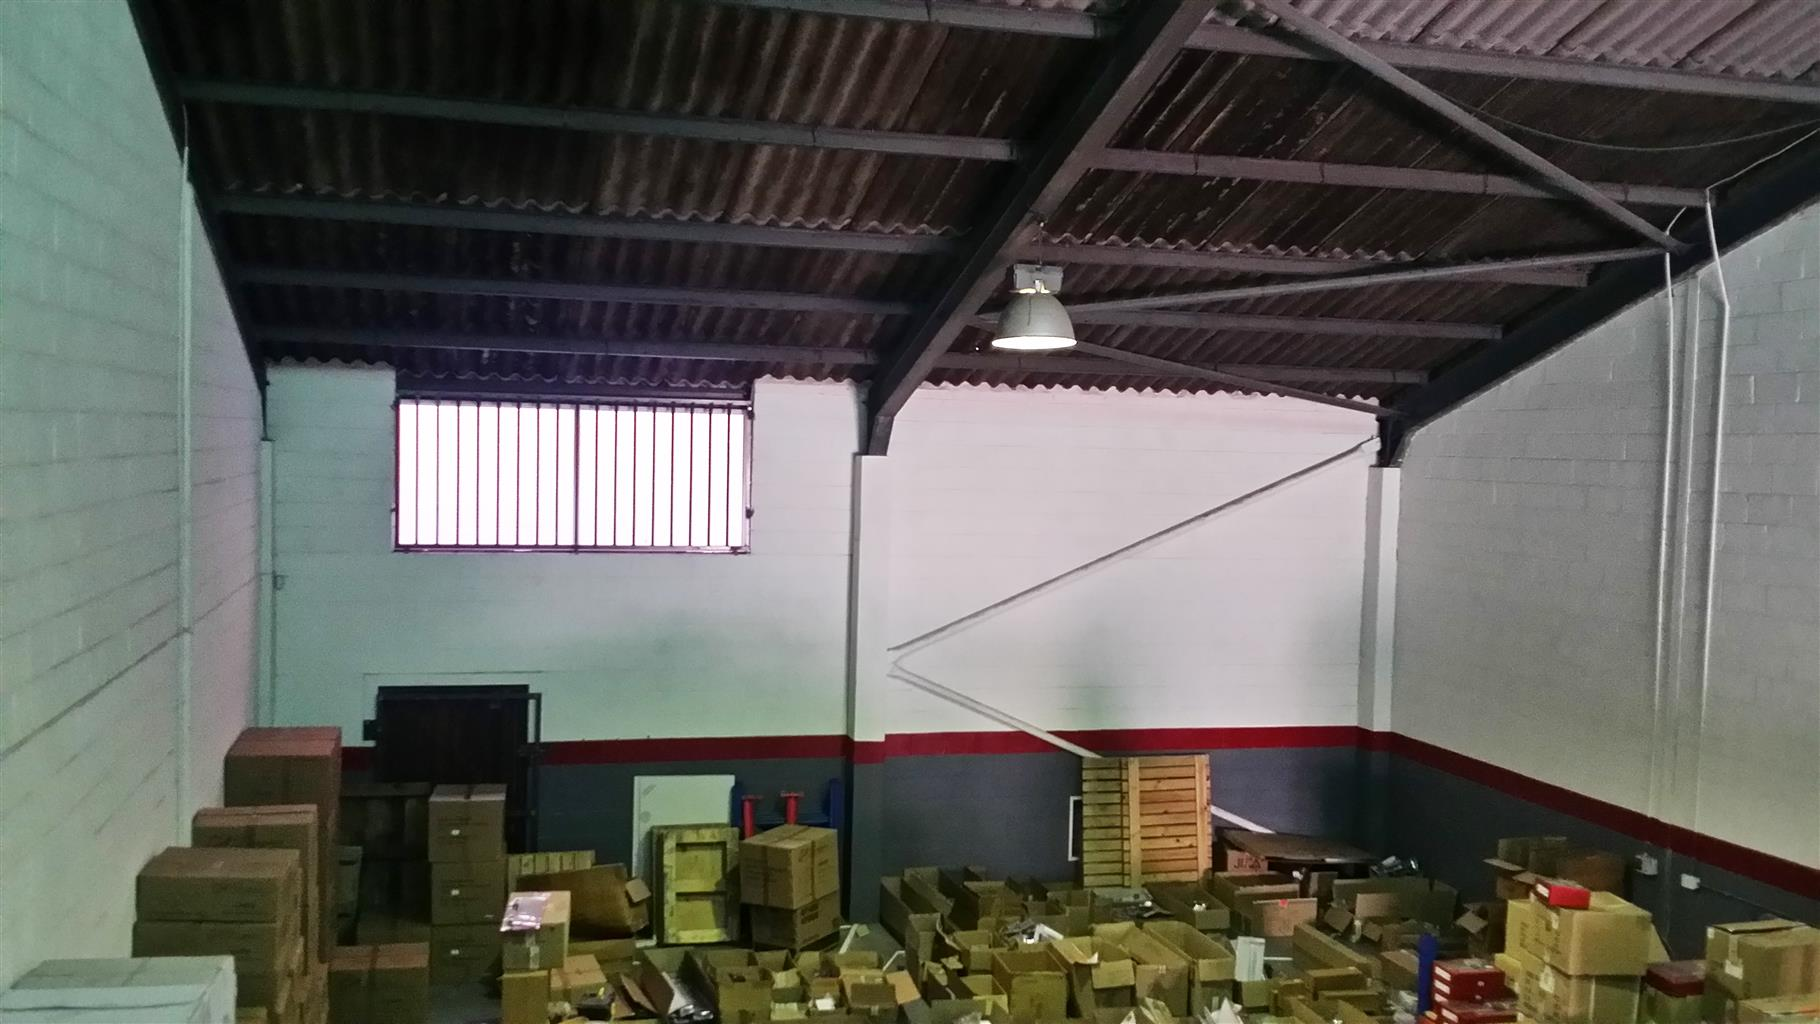 MONTAGUE GARDENS: 350m2 Warehouse To Let